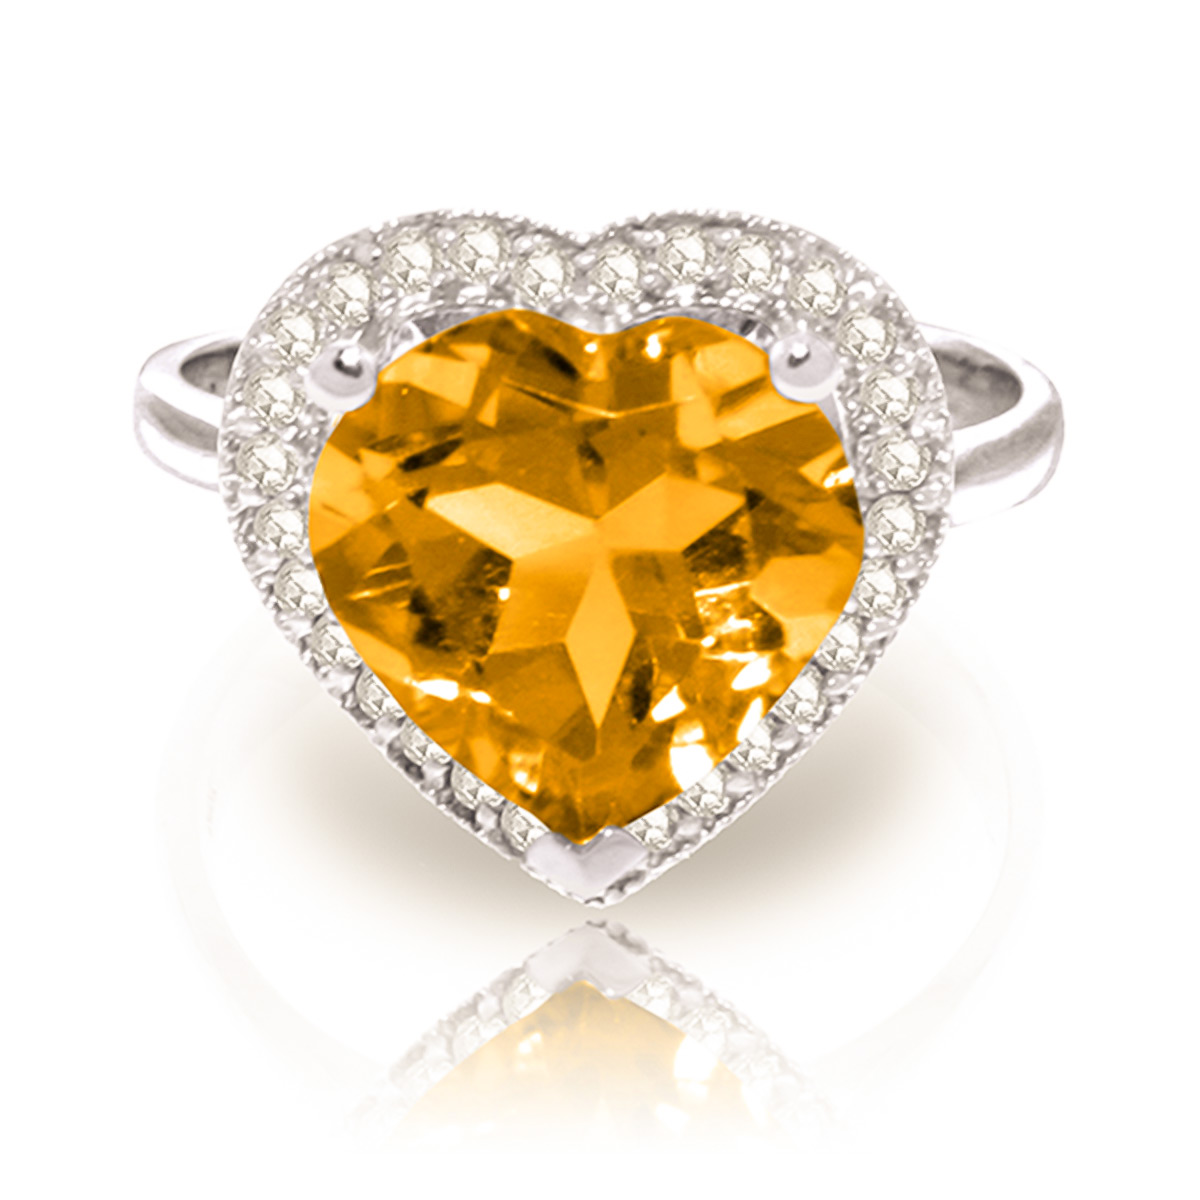 Citrine and Diamond Halo Ring 3.1ct in 9ct White Gold